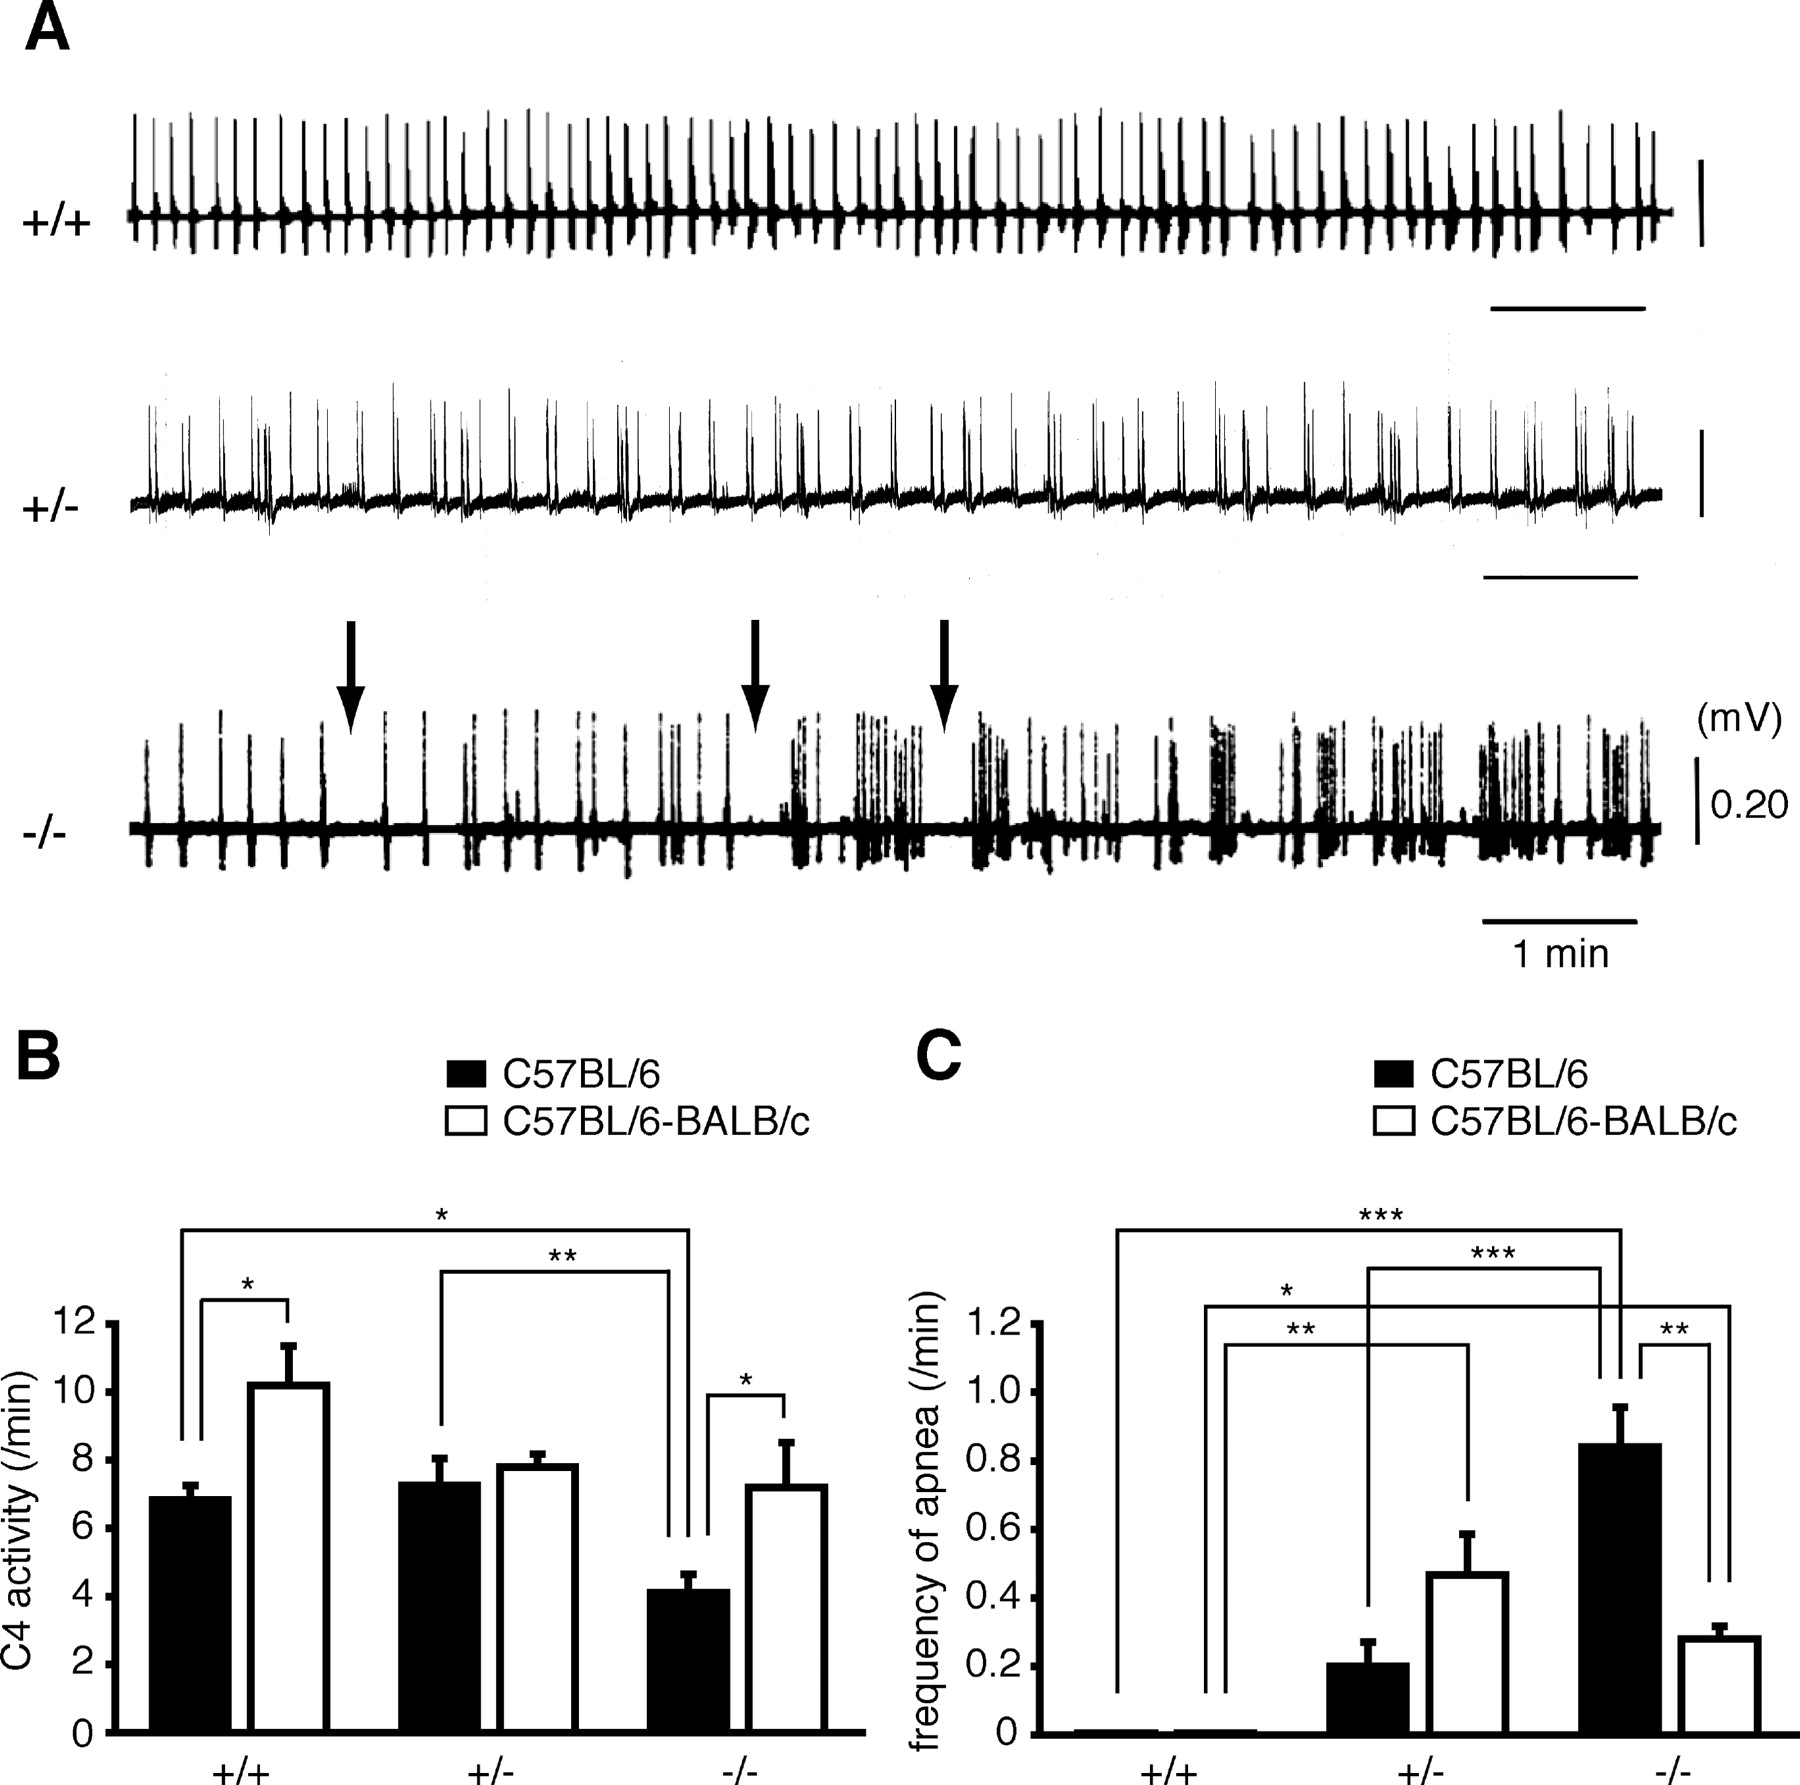 DSCAM Deficiency Causes Loss of Pre-Inspiratory Neuron Synchroneity